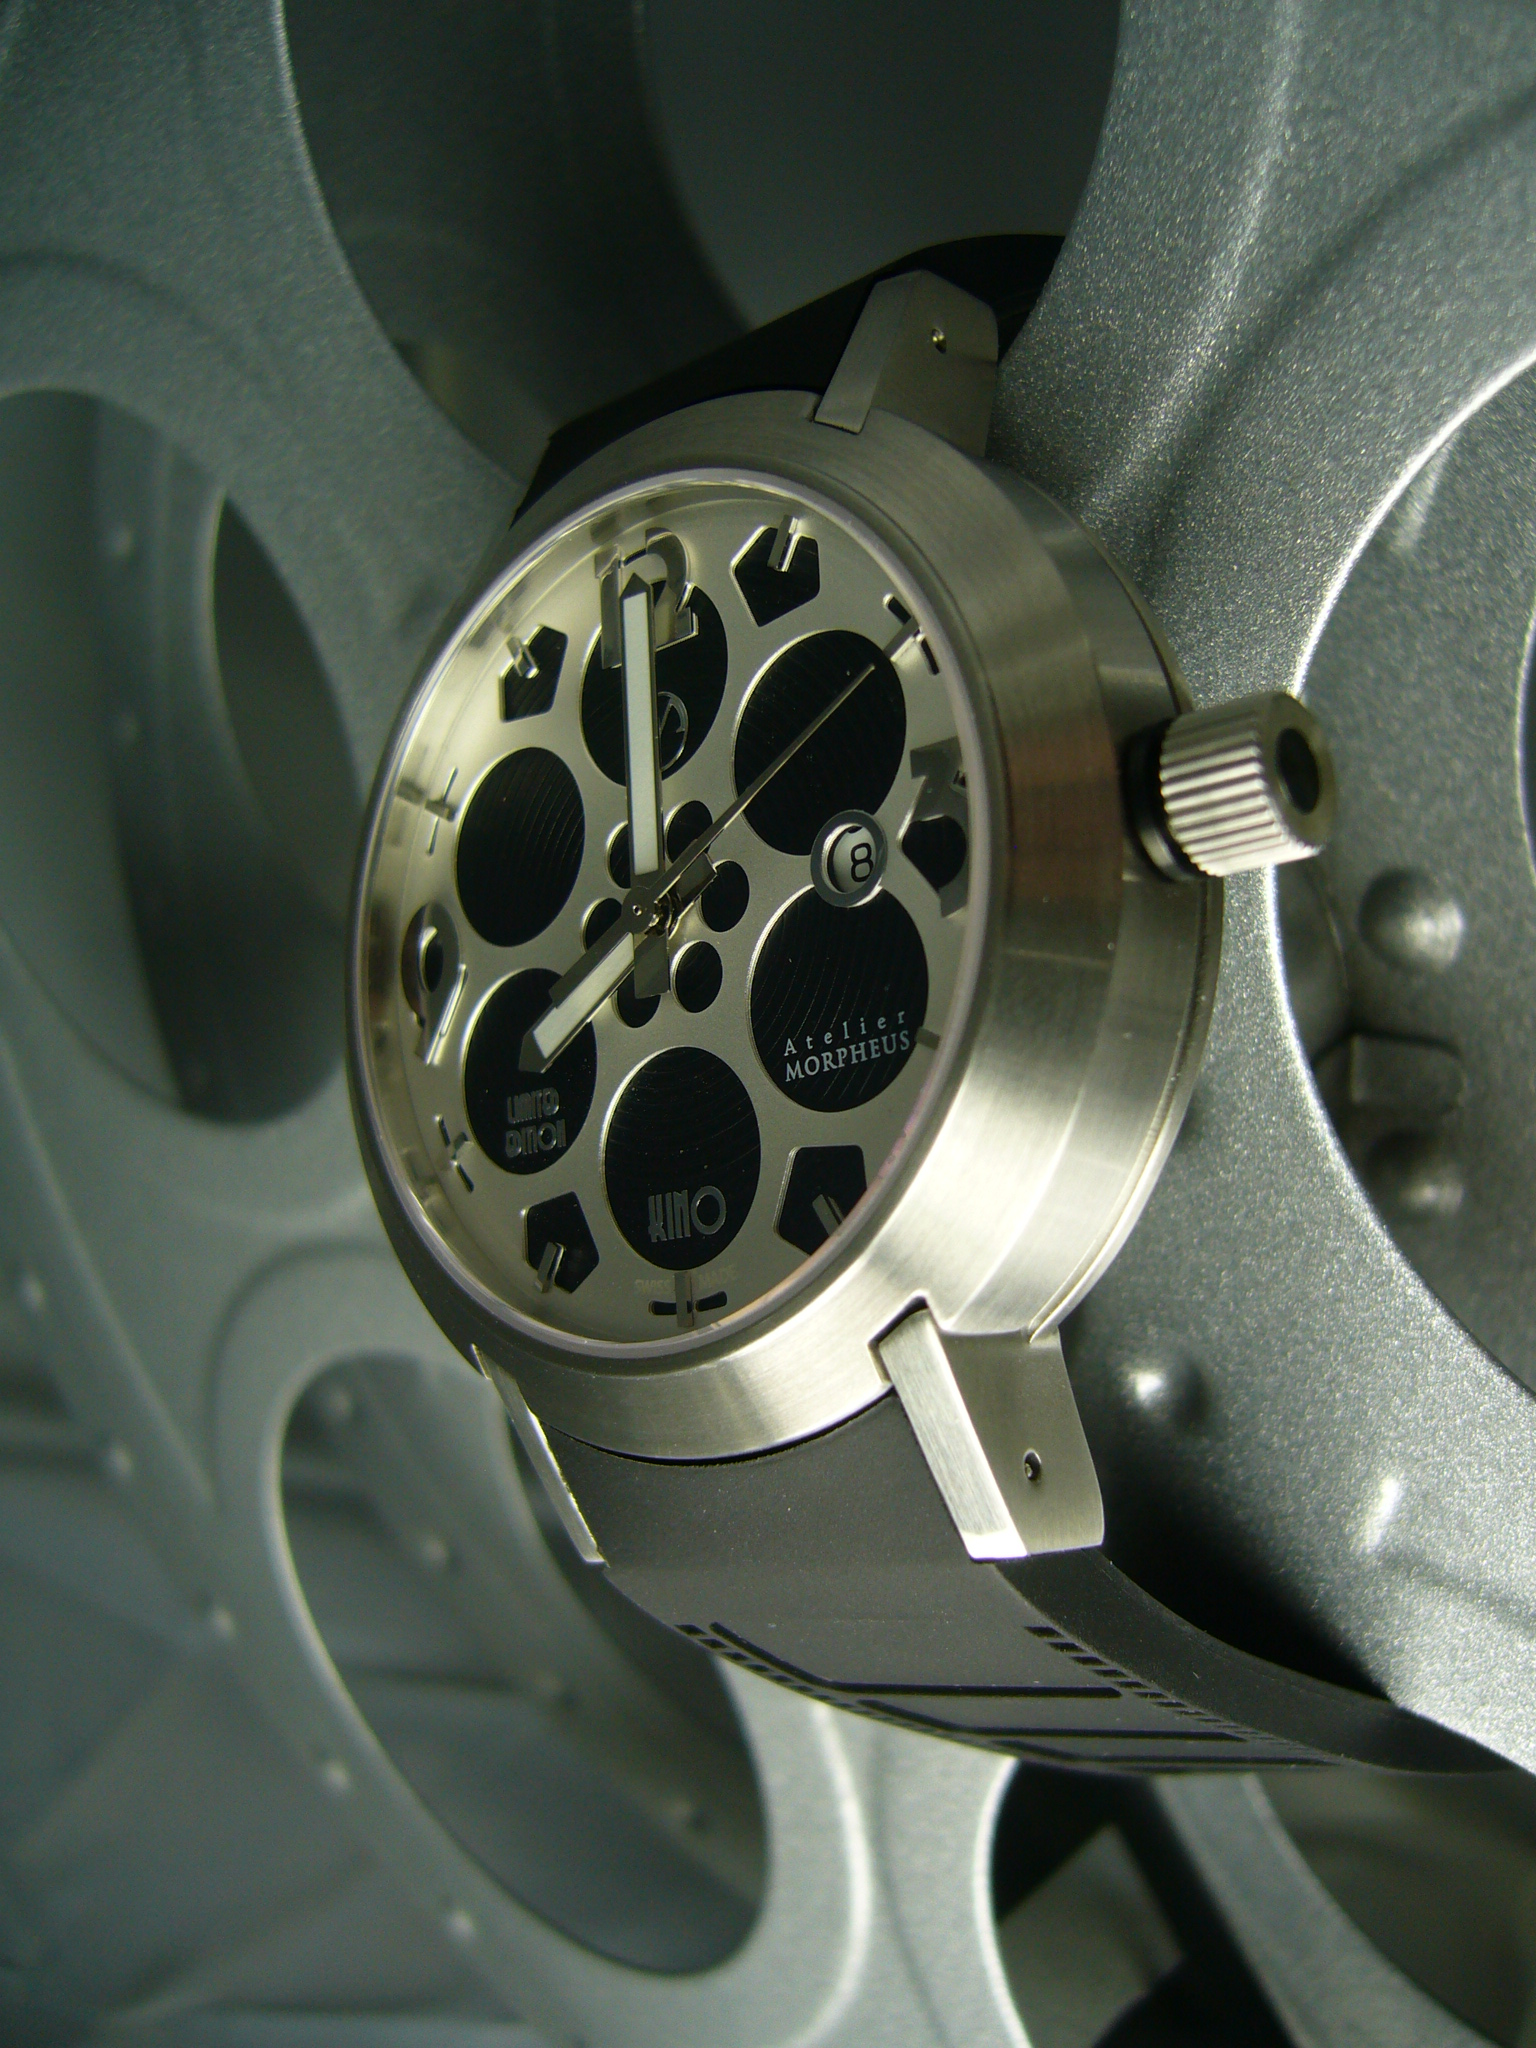 Cinema Kino Swiss Watch